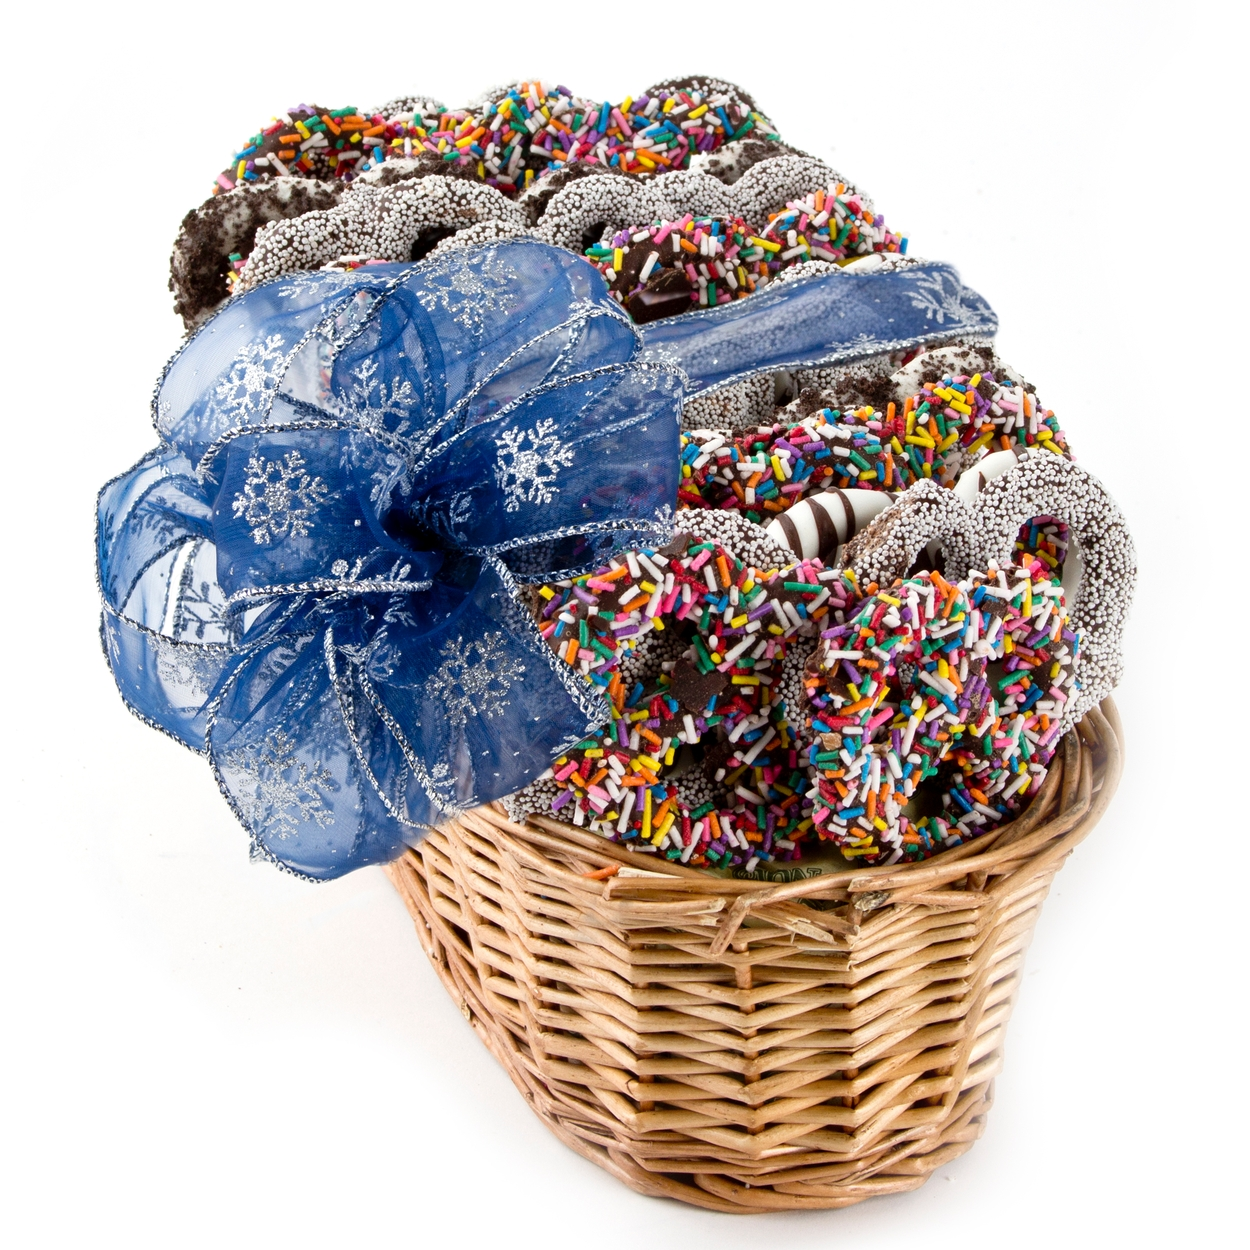 Hanukkah chocolate pretzel gift basket holiday nut gift baskets hanukkah chocolate pretzel gift basket holiday nut gift baskets holiday gifts christmas candy oh nuts negle Images